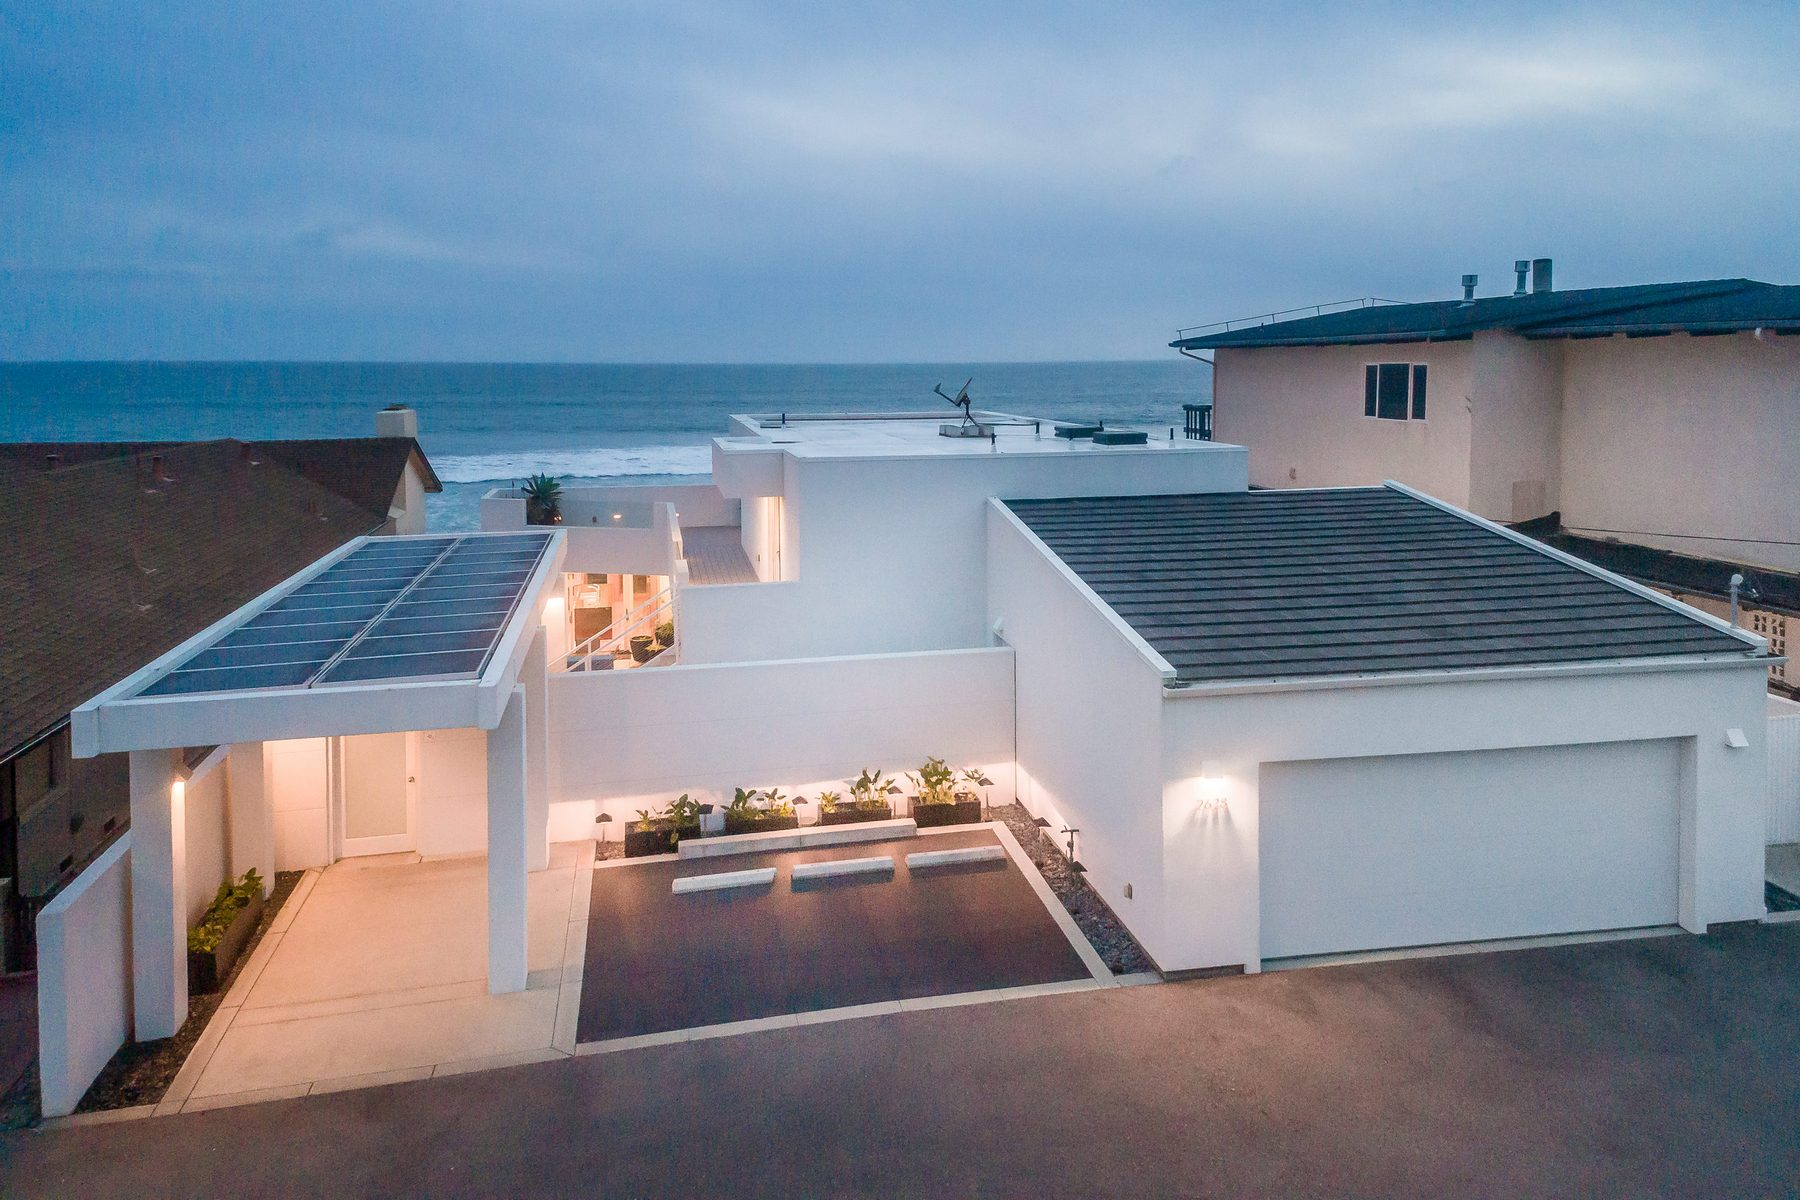 single family homes for Active at Oceanfront Contemporary Stunner 2628 Studio Dr. Cayucos, California 93430 United States